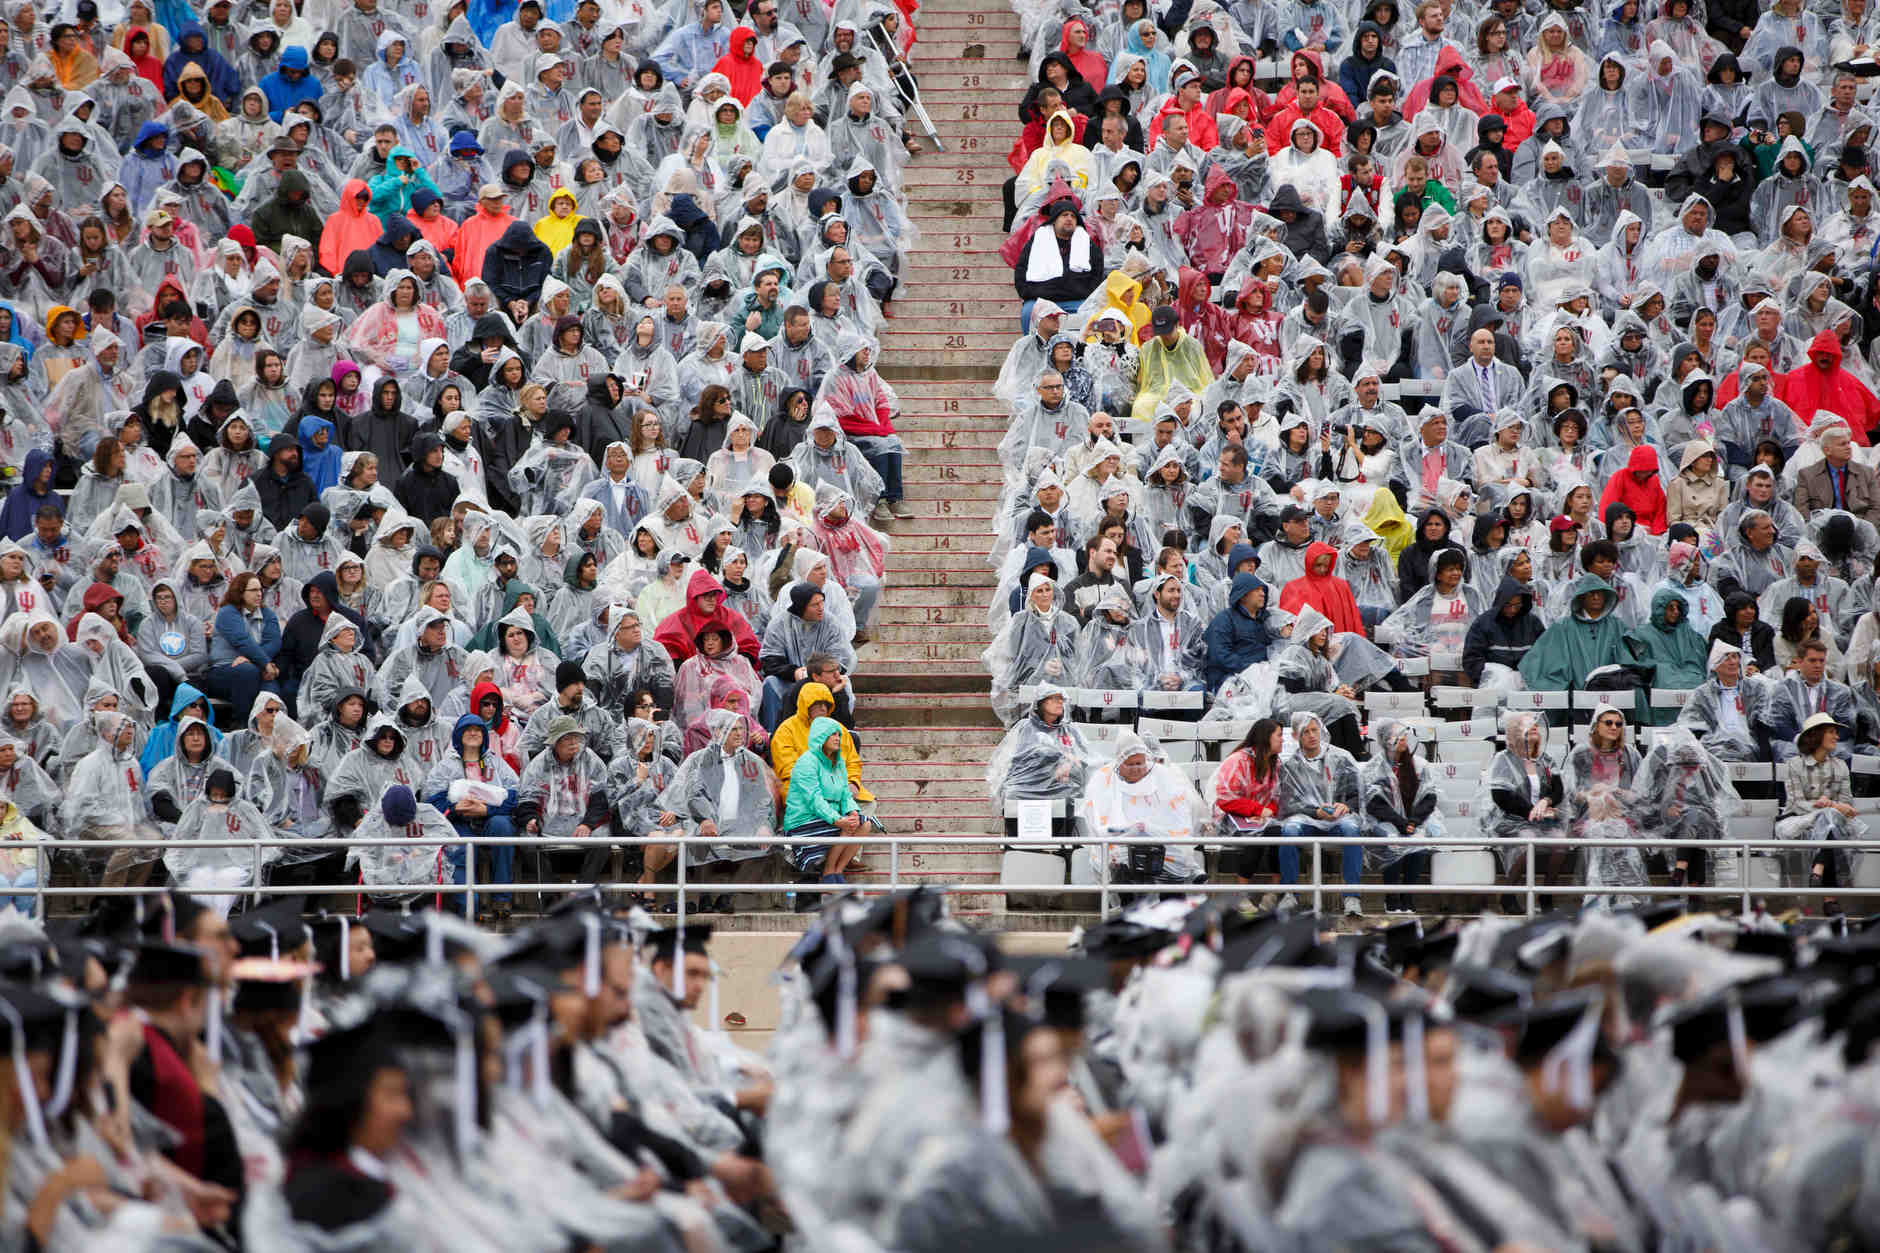 Audience members watch from the stands during the Indiana University Bloomington Undergraduate Commencement at Memorial Stadium on Saturday, May 4, 2019. (James Brosher/Indiana University)